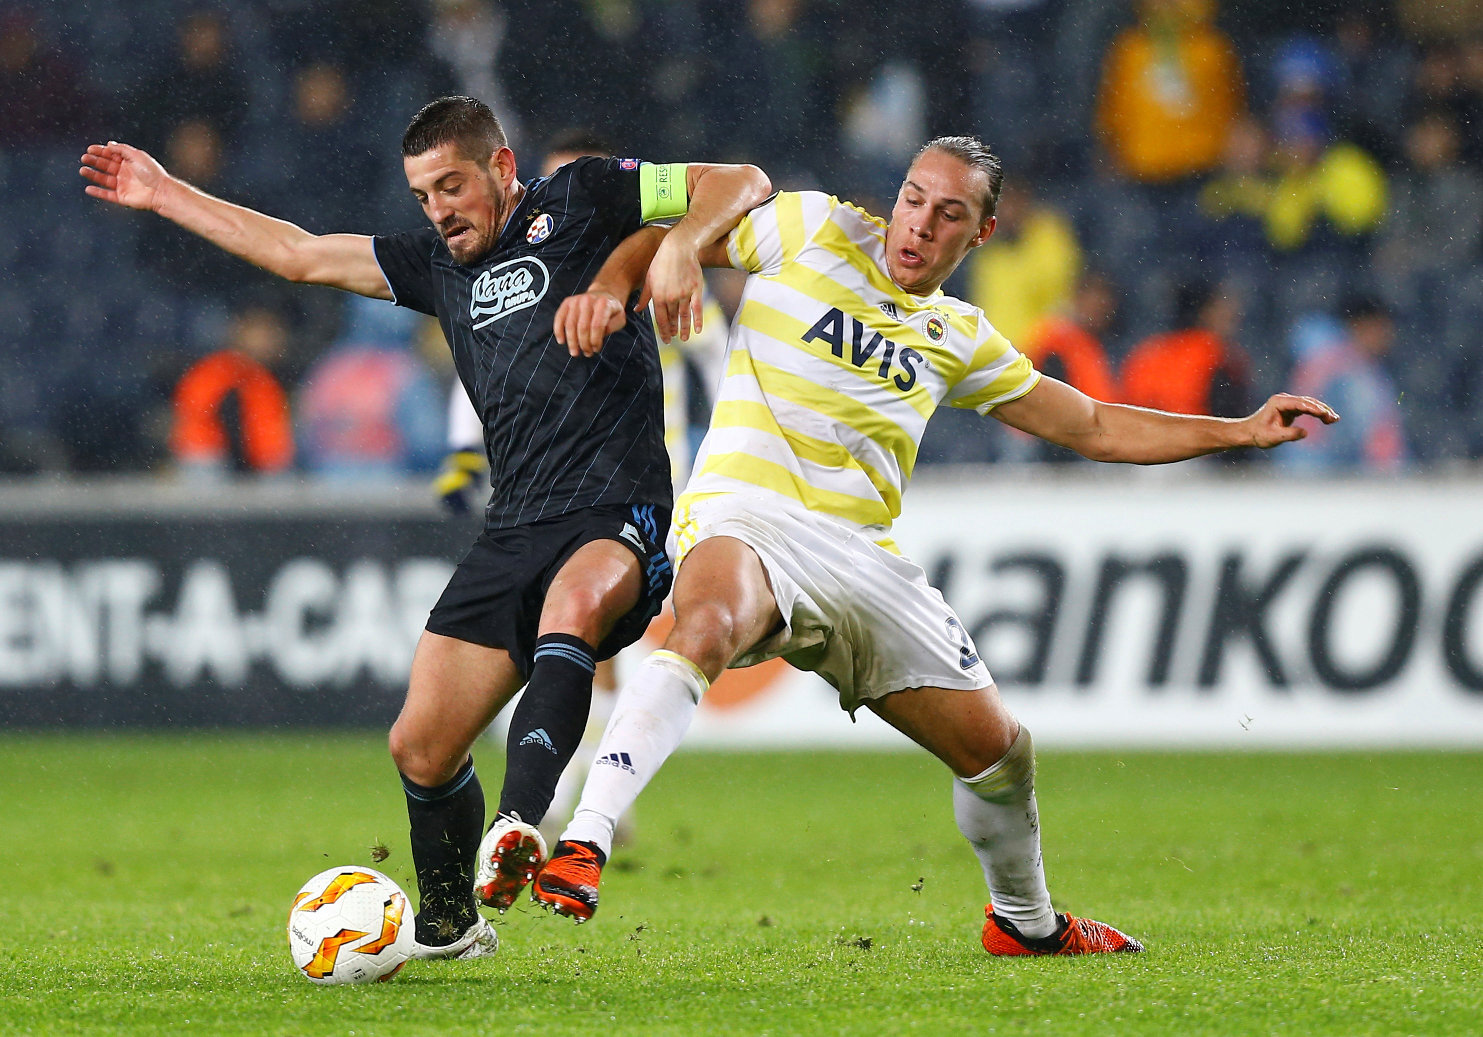 Soccer Football - Europa League - Group Stage - Group D - Fenerbahce v GNK Dinamo Zagreb - Sukru Saracoglu Stadium, Istanbul, Turkey - November 29, 2018  Dinamo Zagreb's Arijan Ademi in action with Fenerbahce's Michael Frey   REUTERS/Osman Orsal